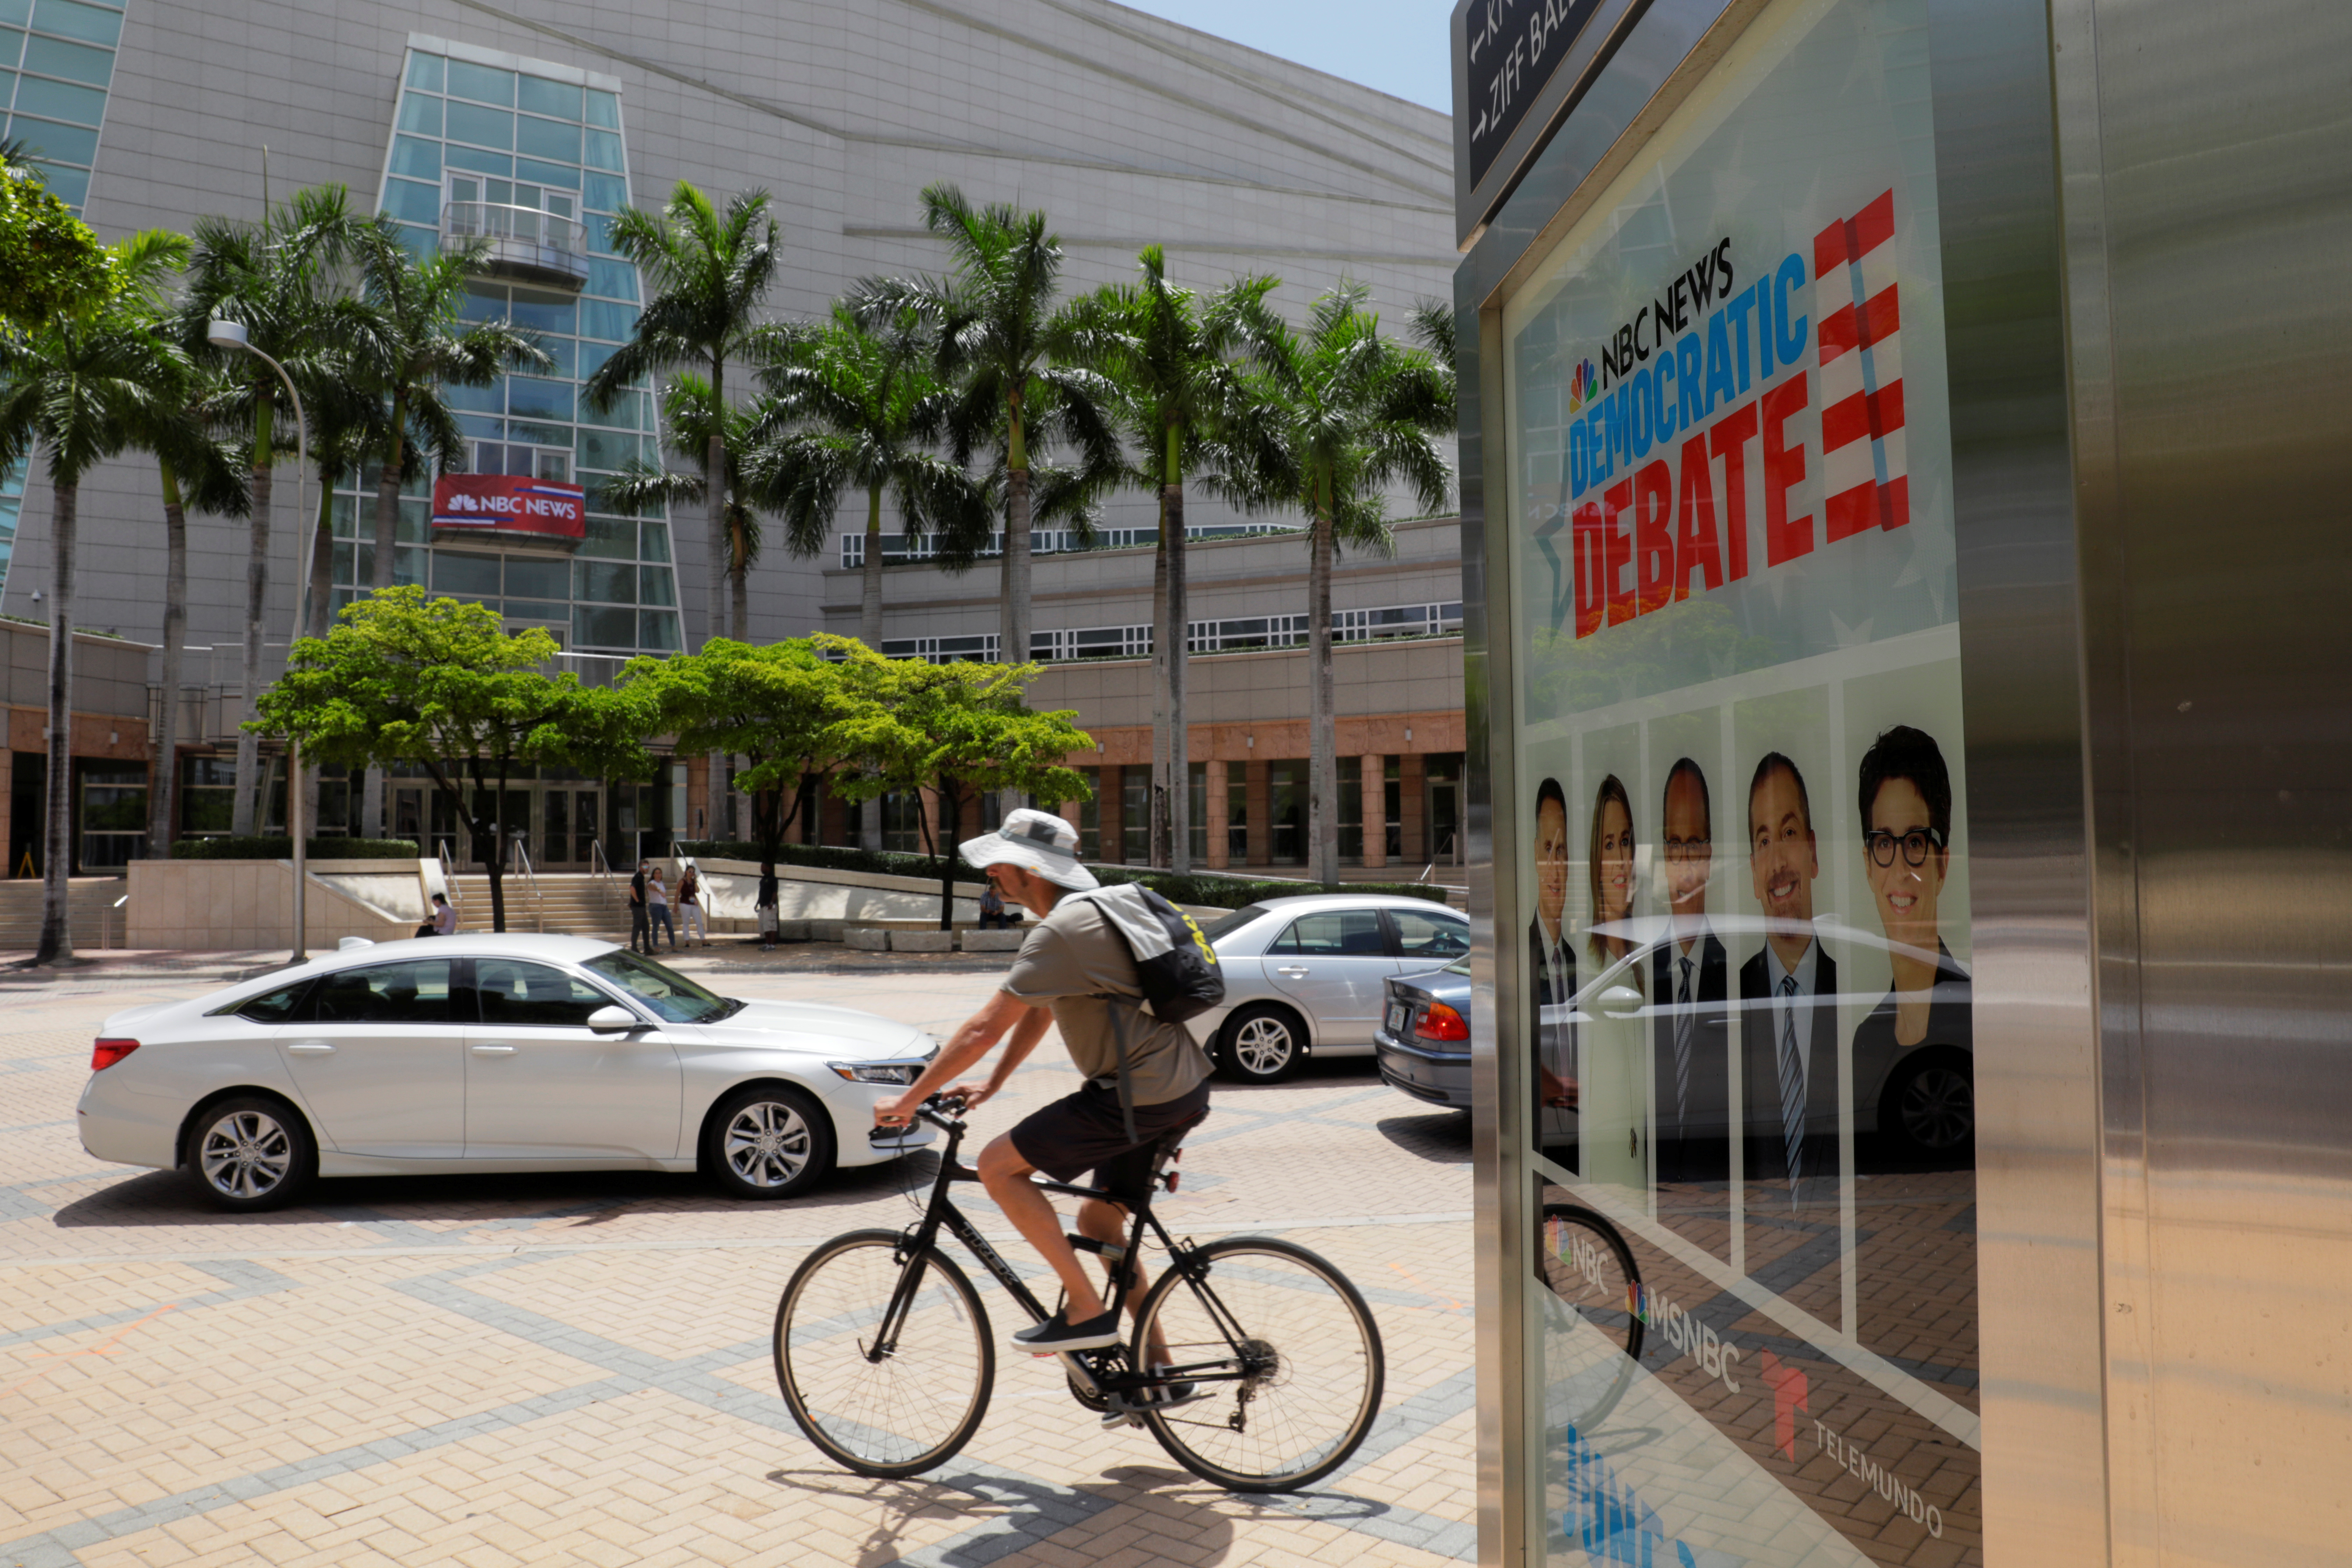 Traffic moves past Miami's Adrienne Arsht Performing Arts Center the day before 20 Democratic U.S. presidential candidates begin a two night debate that will be the first debate of the 2020 U.S. presidential election in Miami.